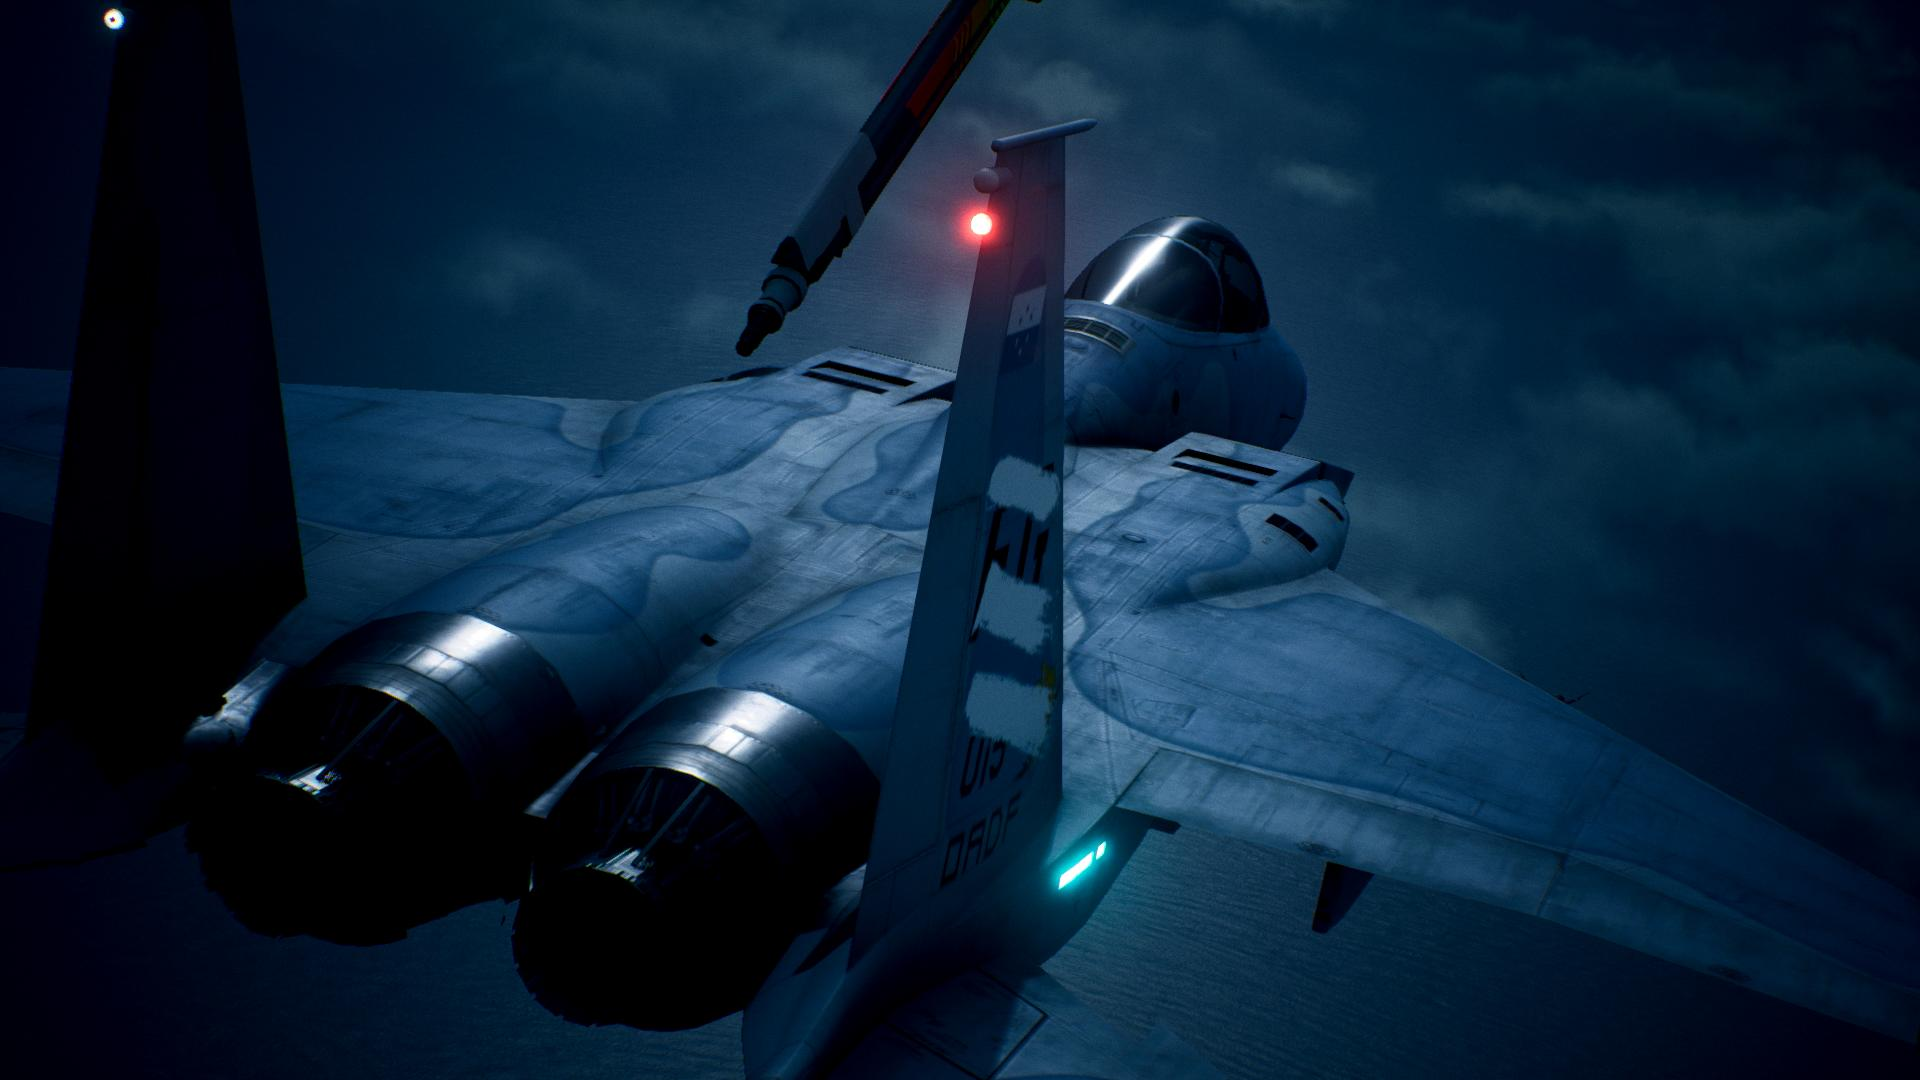 ACE COMBAT 7: SKIES UNKNOWN game image